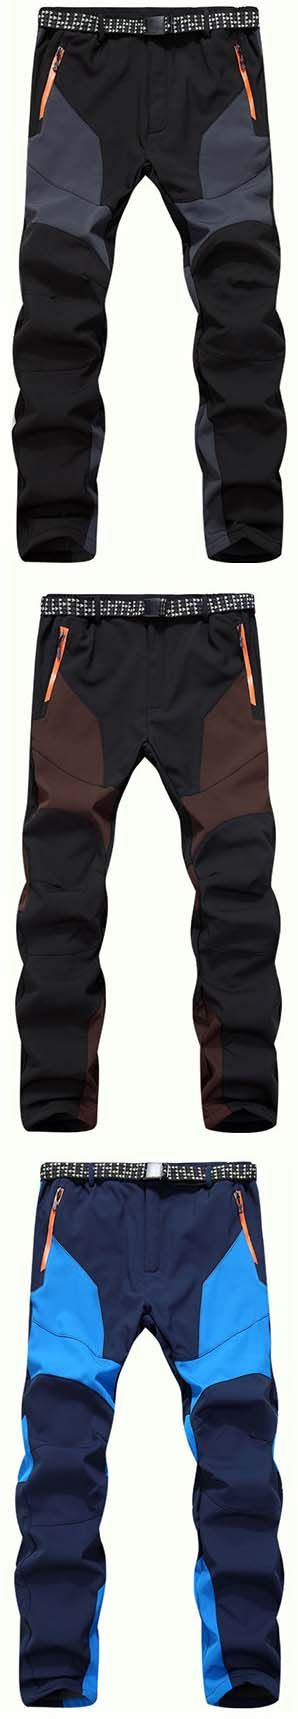 men cargo pants:Mens Outdoor Soft Shell Water-repellent Quick-Dry Breathable Stitching Color Sport Pants